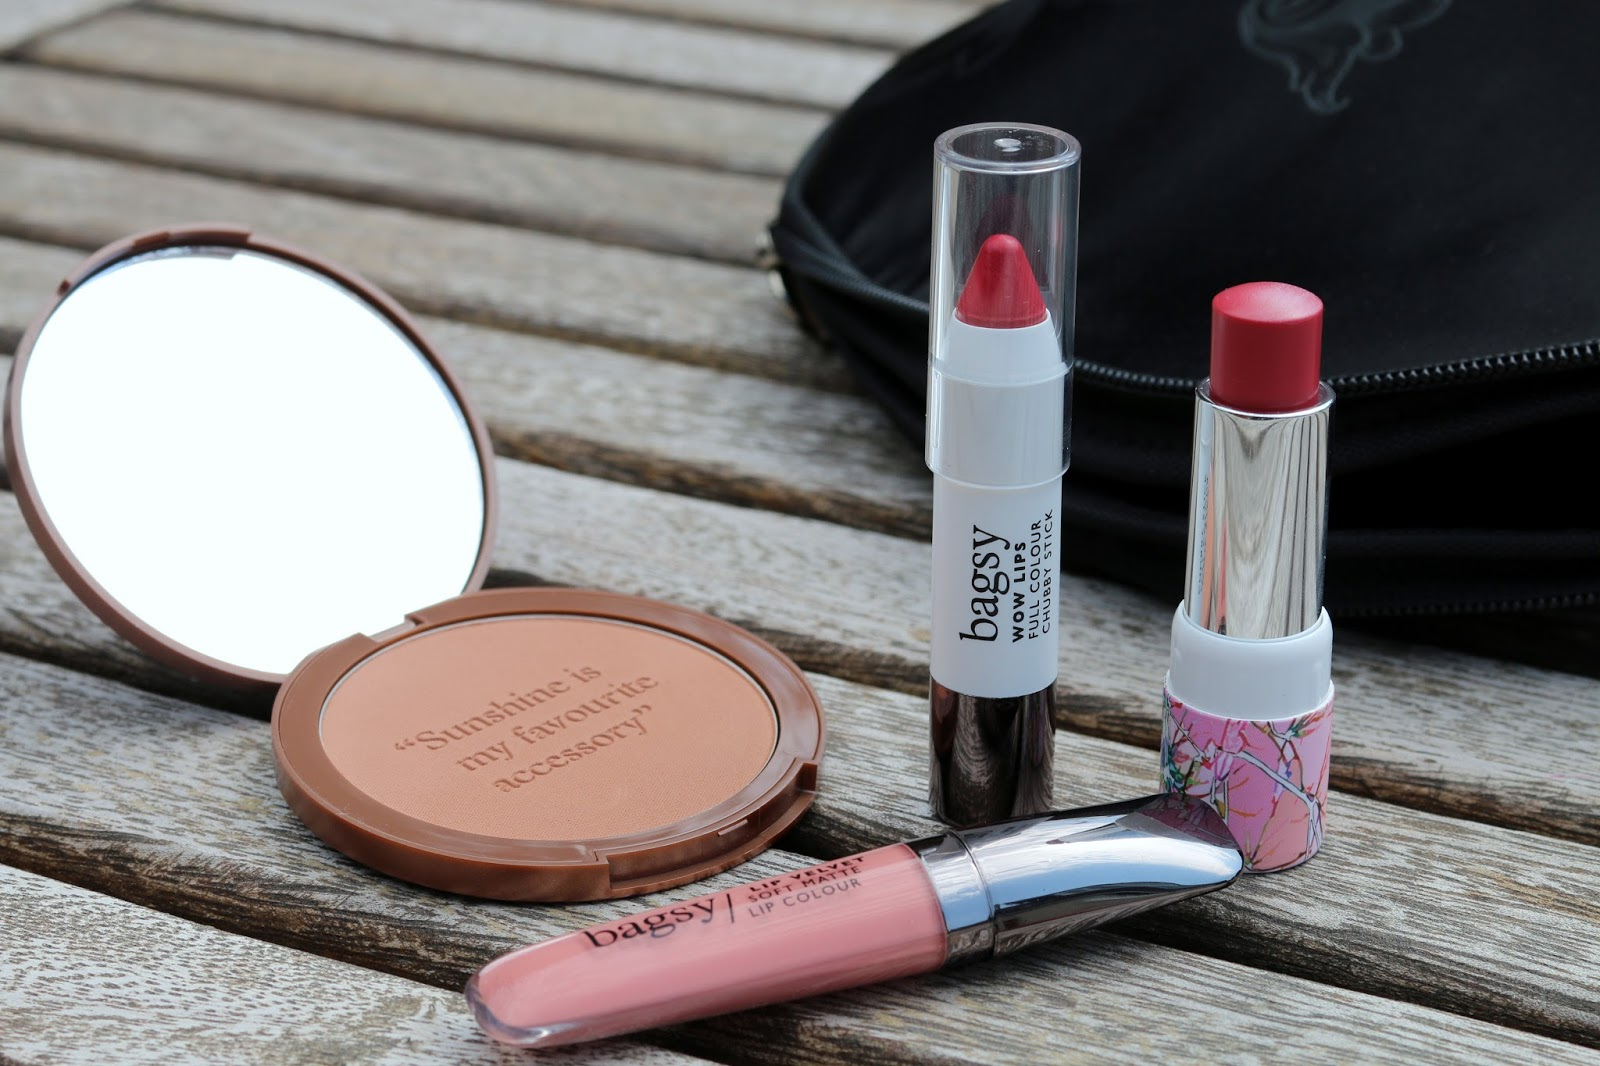 Bagsy Makeup, Makeup for your handbag